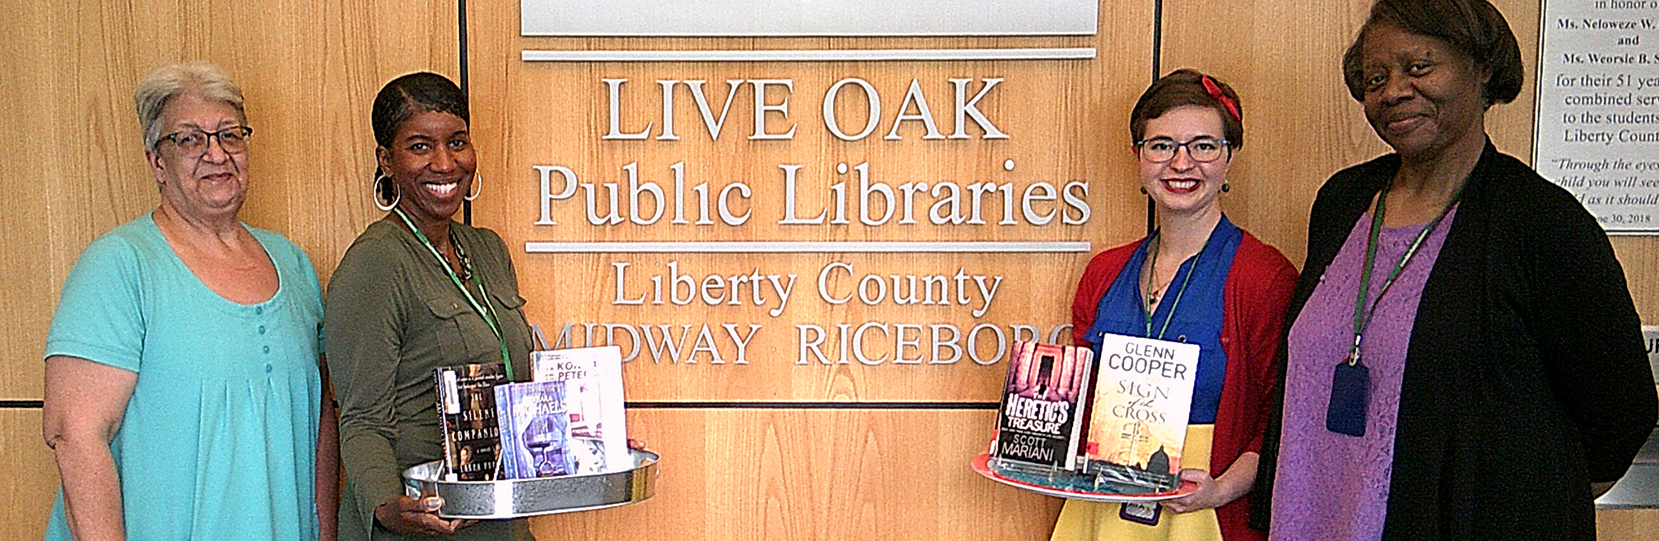 Midway-Riceboro Library staff